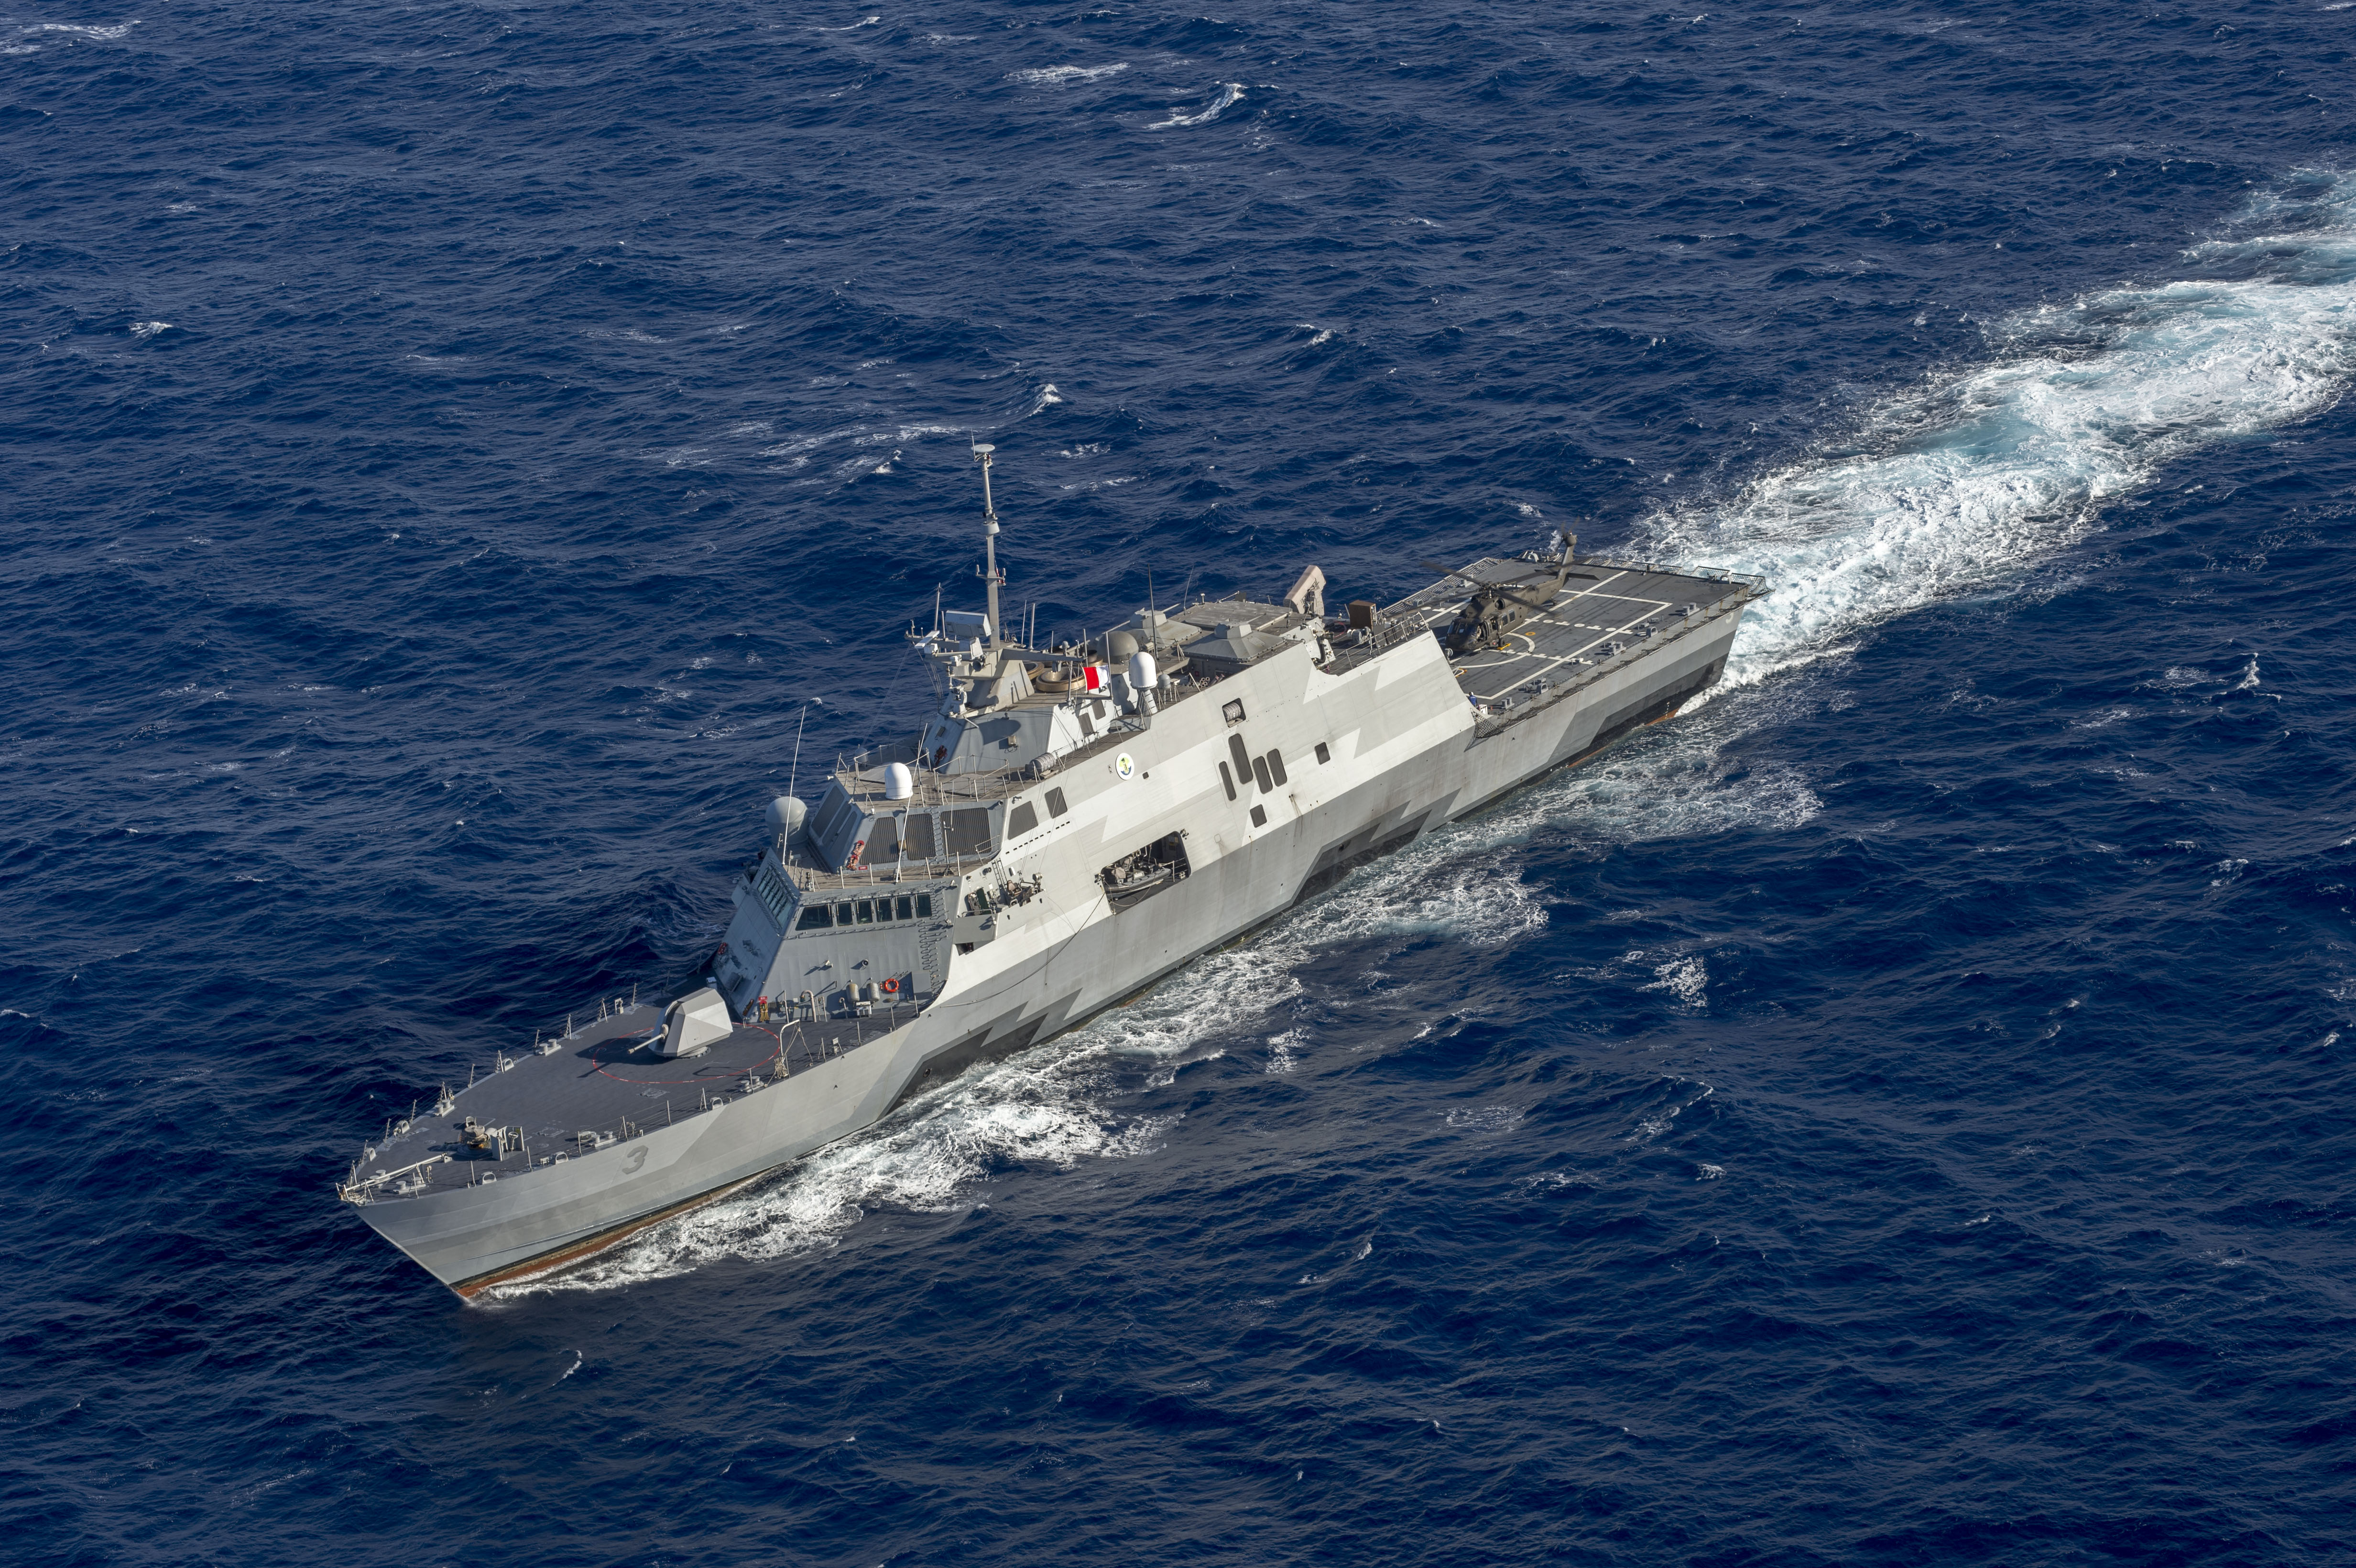 A Freedom-class LCS, USS Fort Worth, underway near Hawaii.